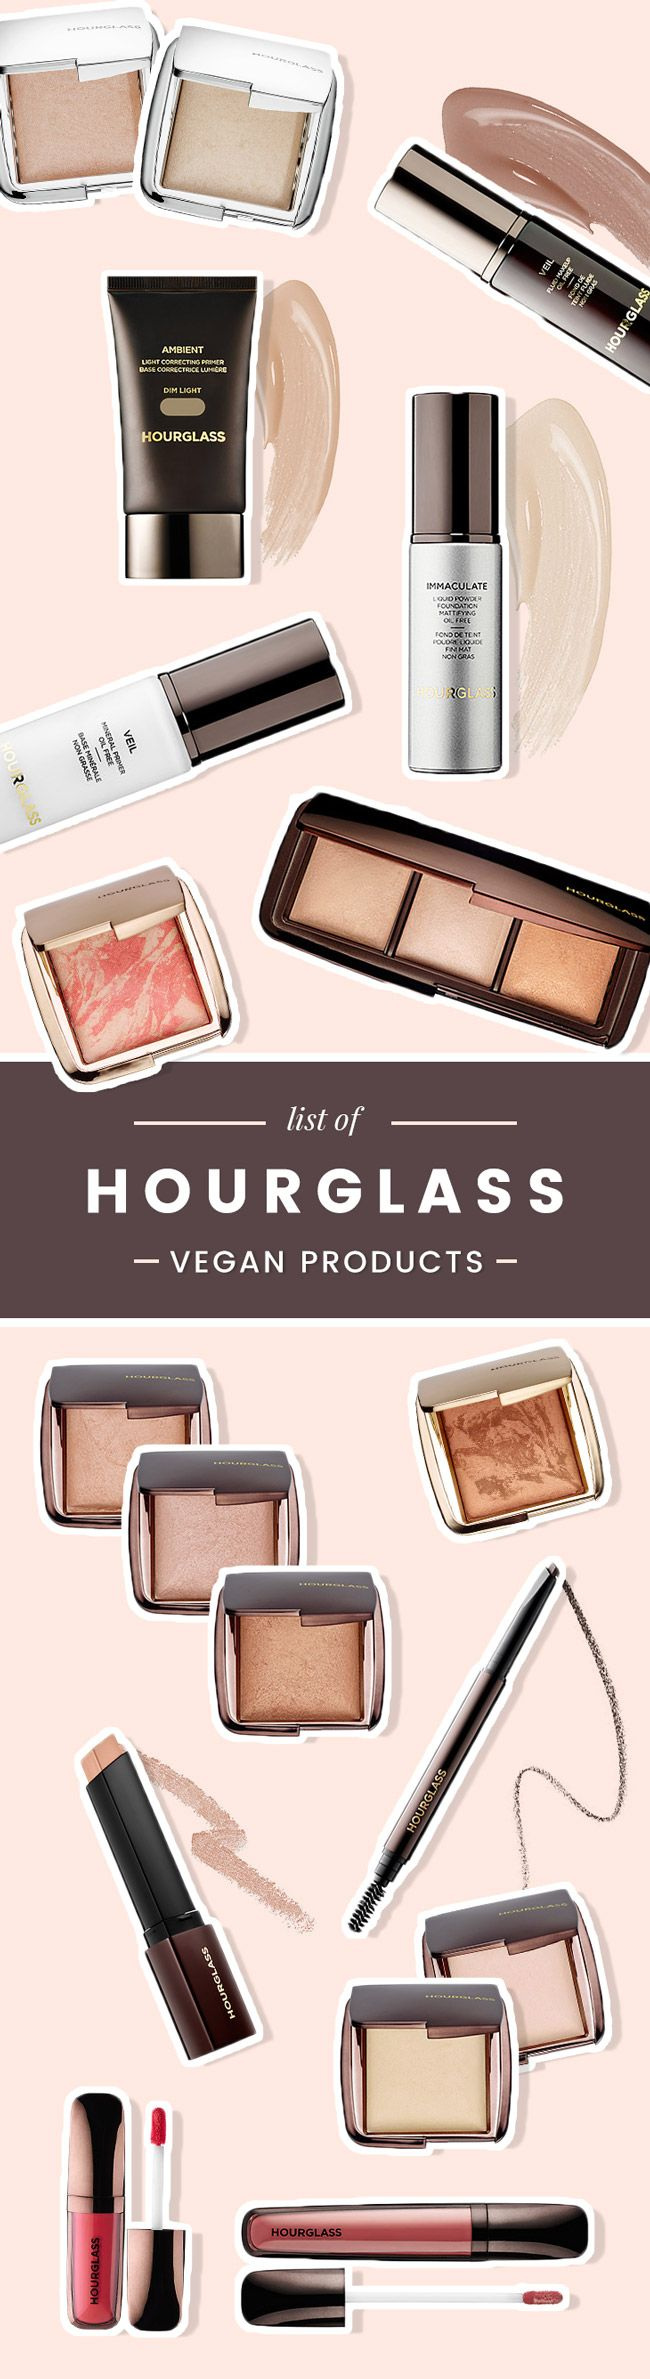 A complete list of all Hourglass makeup products and brushes that are considered vegan; does not contain any animal-derived ingredients or by-products.